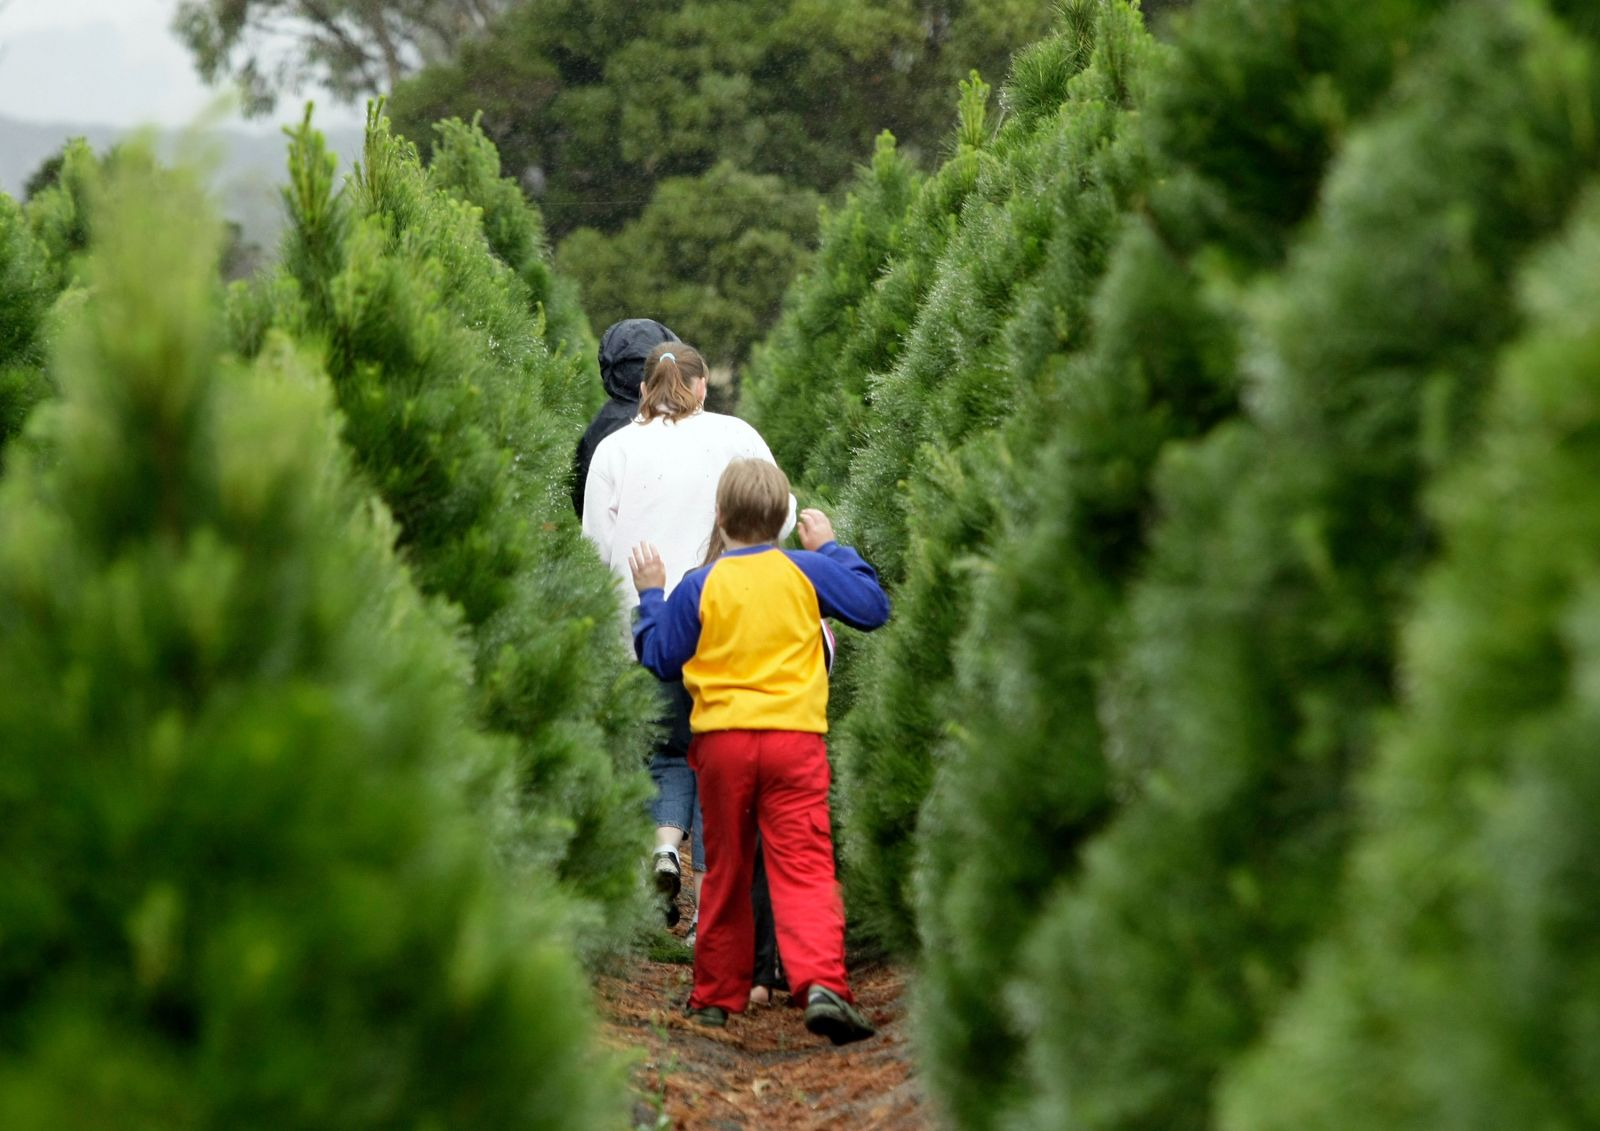 Picking Christmas tree